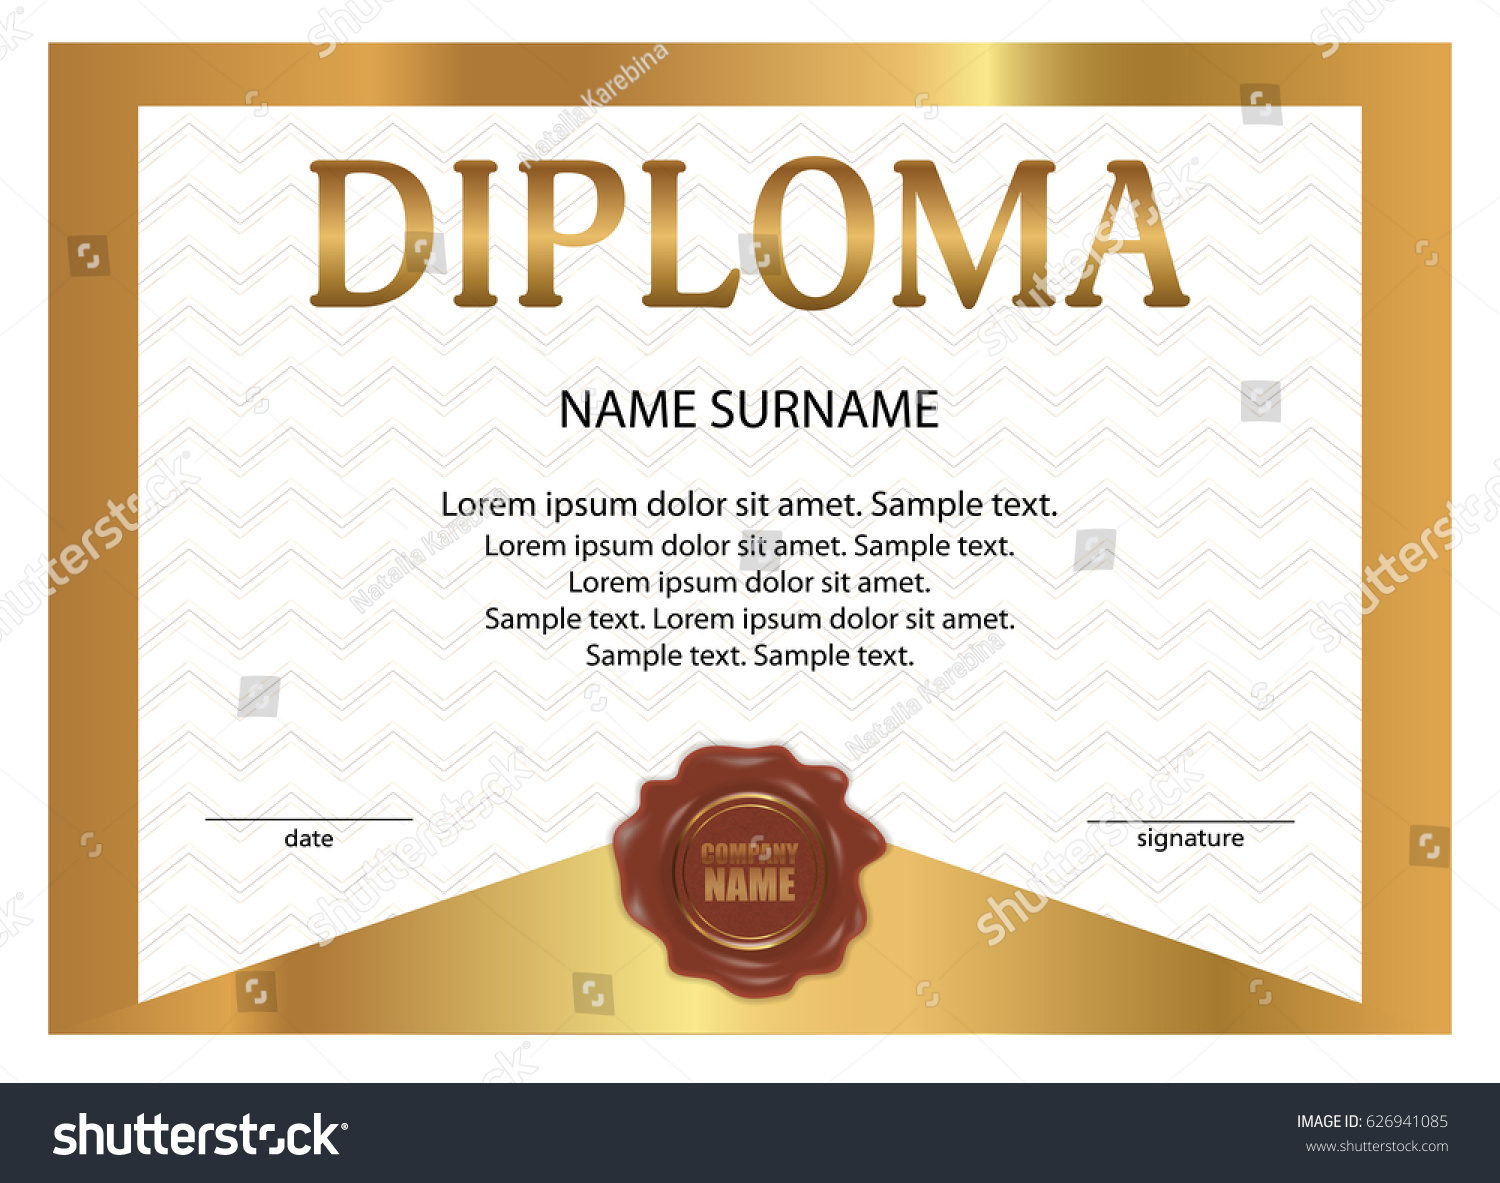 Diploma certificate wax seal golden template stock vector diploma or certificate with wax seal golden template with watermark vector illustration yelopaper Images